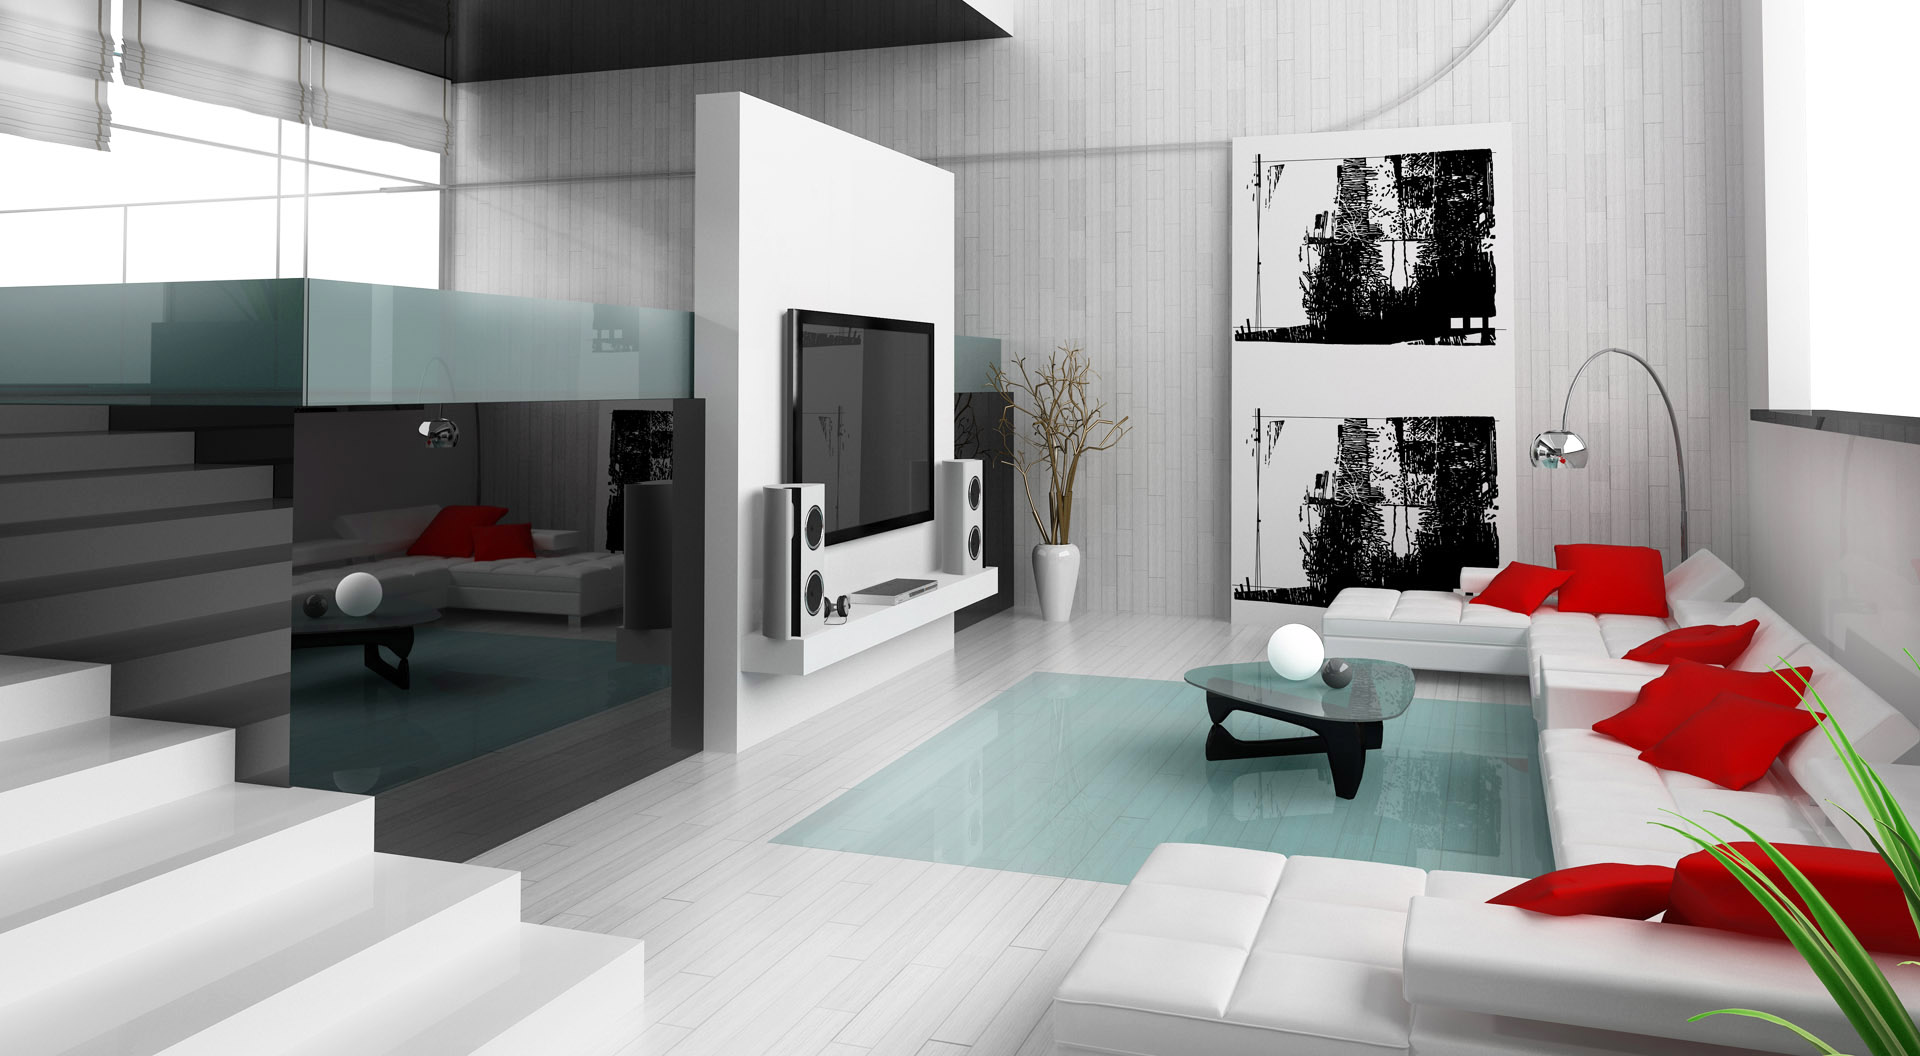 furniture-for-modern-house-for-interior-modern-living-room-furniture-sets-with-white-sectional-sofa-and-wall-painting-for-living-room-design